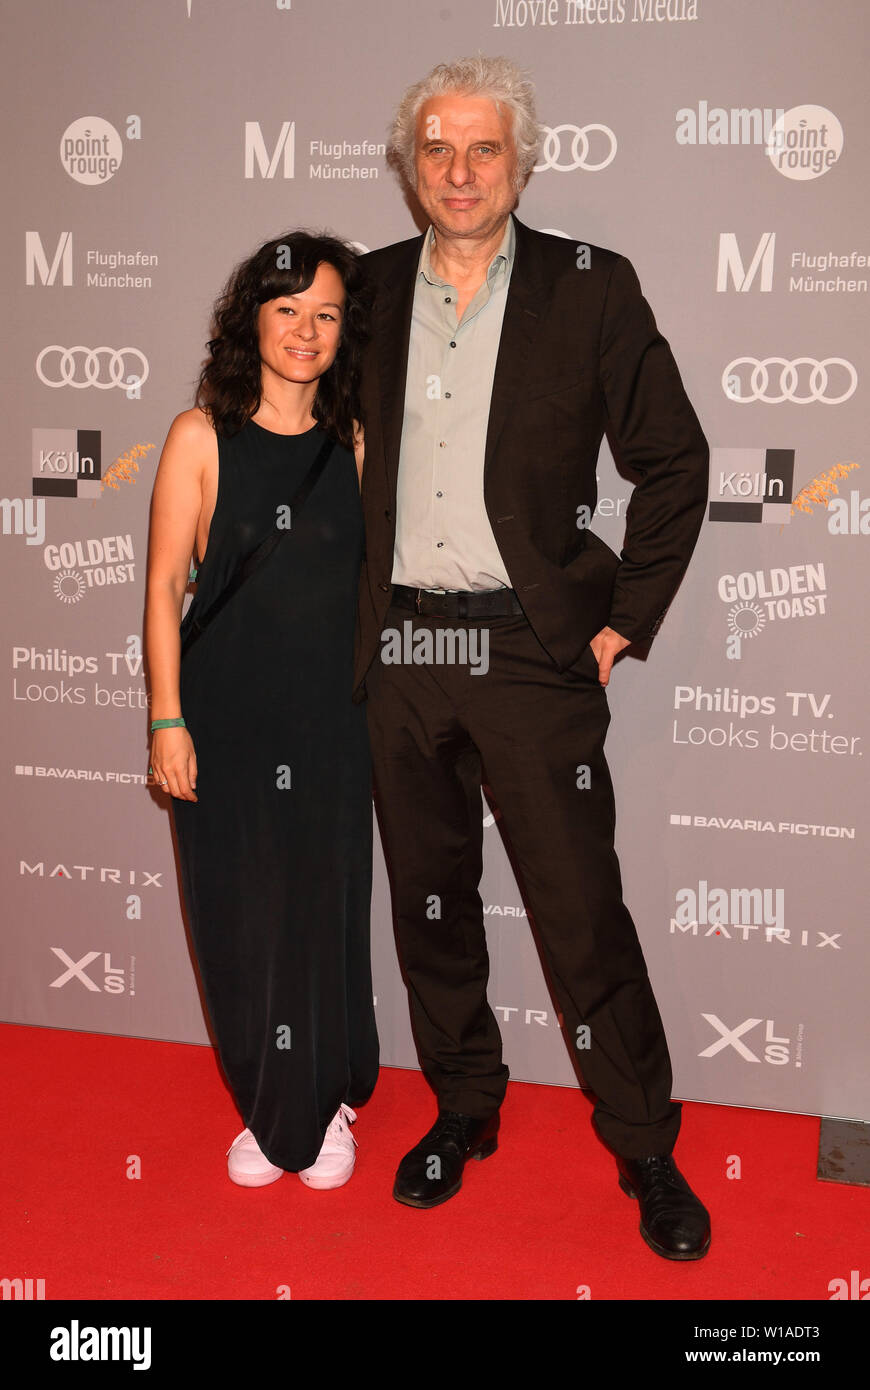 27 June 2019, Bavaria, Munich: The actor Udo Wachtveitl and Lila Schulz stand on the red carpet of the Audi Director's Cut and the industry meeting Movie Meets Media at the Filmfest Munich which takes place from 27.06.2019 to 06.07.2019. Photo: Felix Hörhager/dpa - Stock Image